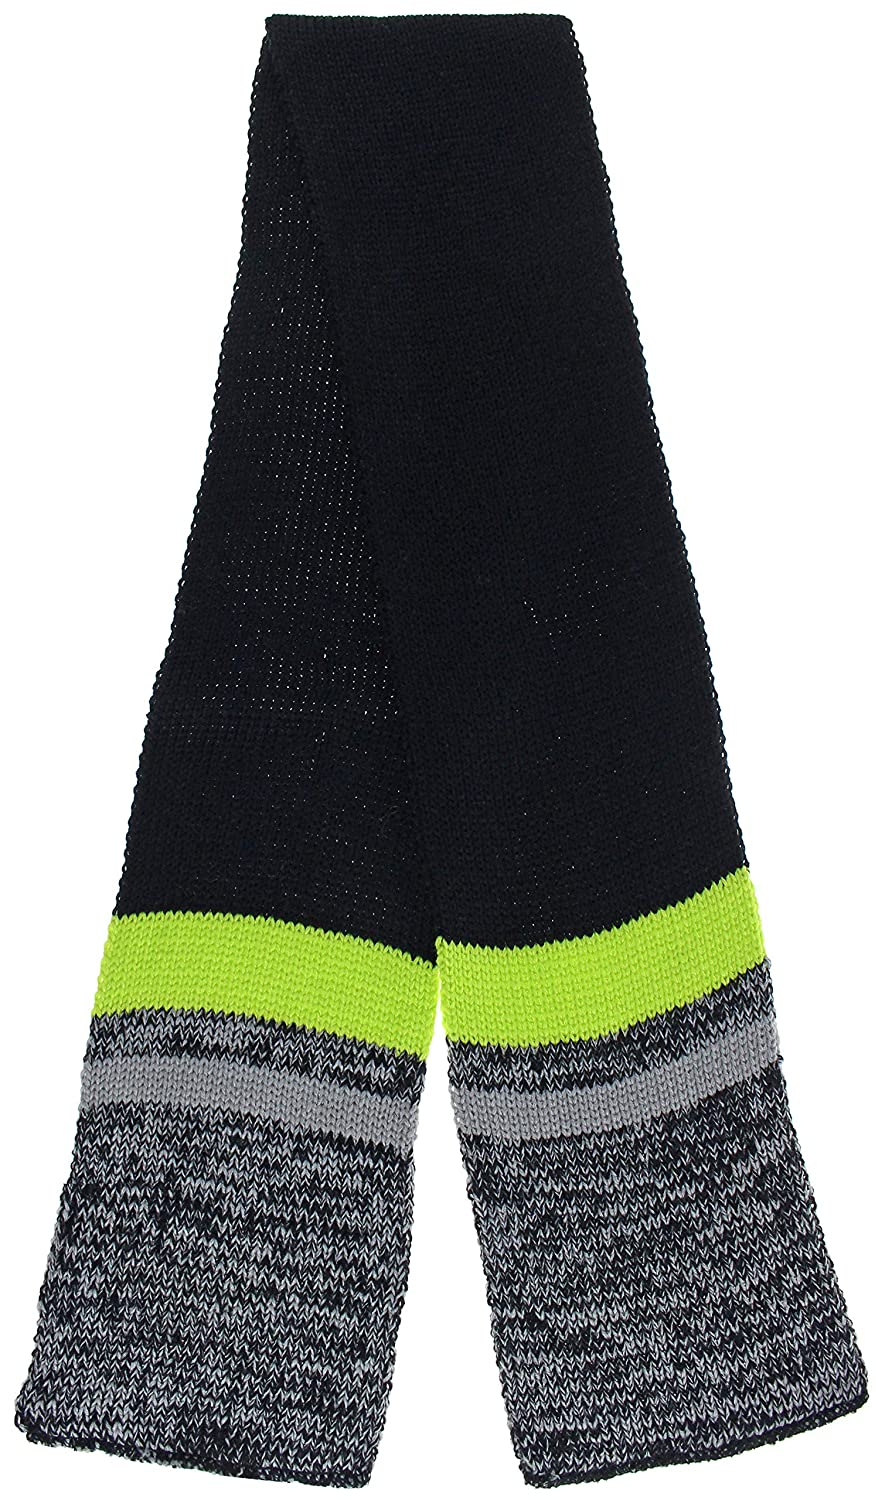 Capelli New York Boys Marled and Striped Knit Cold Weather Set